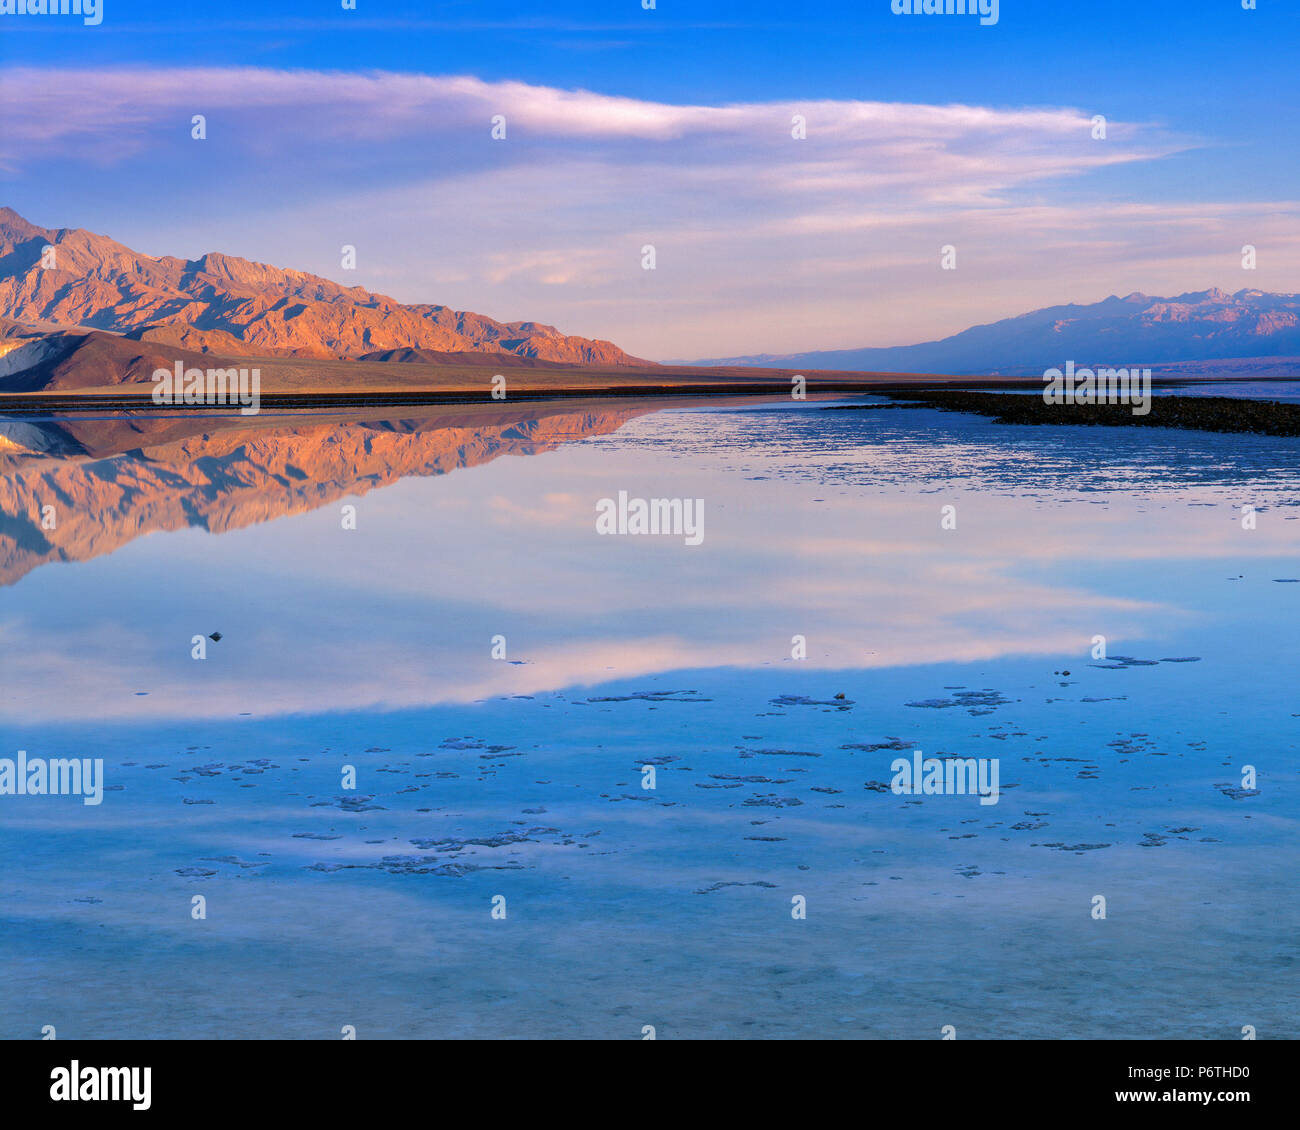 Sunrise, Salt Creek, Death Valley National Park, California - Stock Image